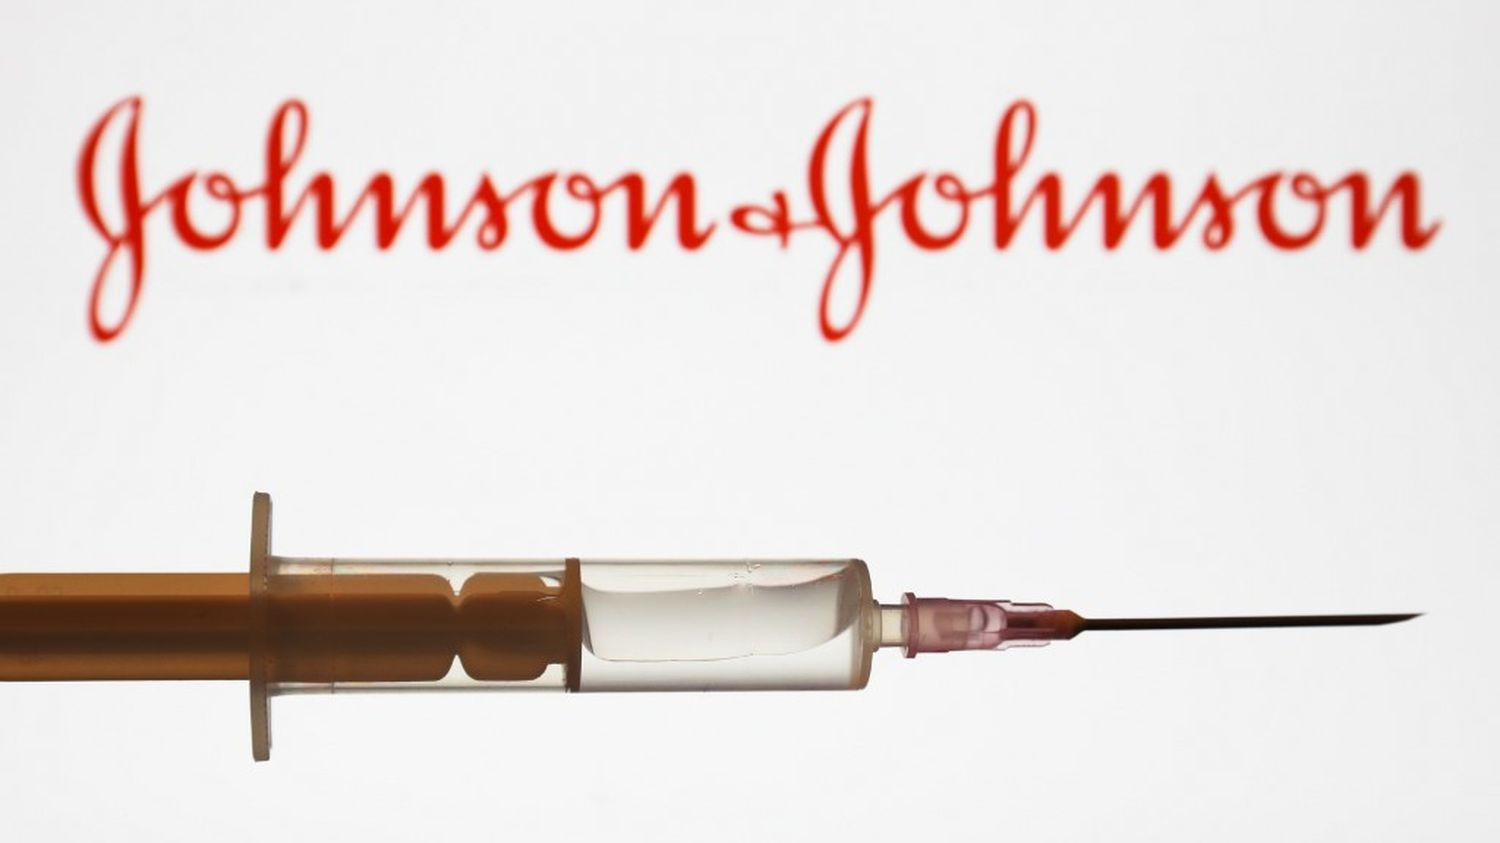 Johnson & Johnson temporarily stops vaccine trials